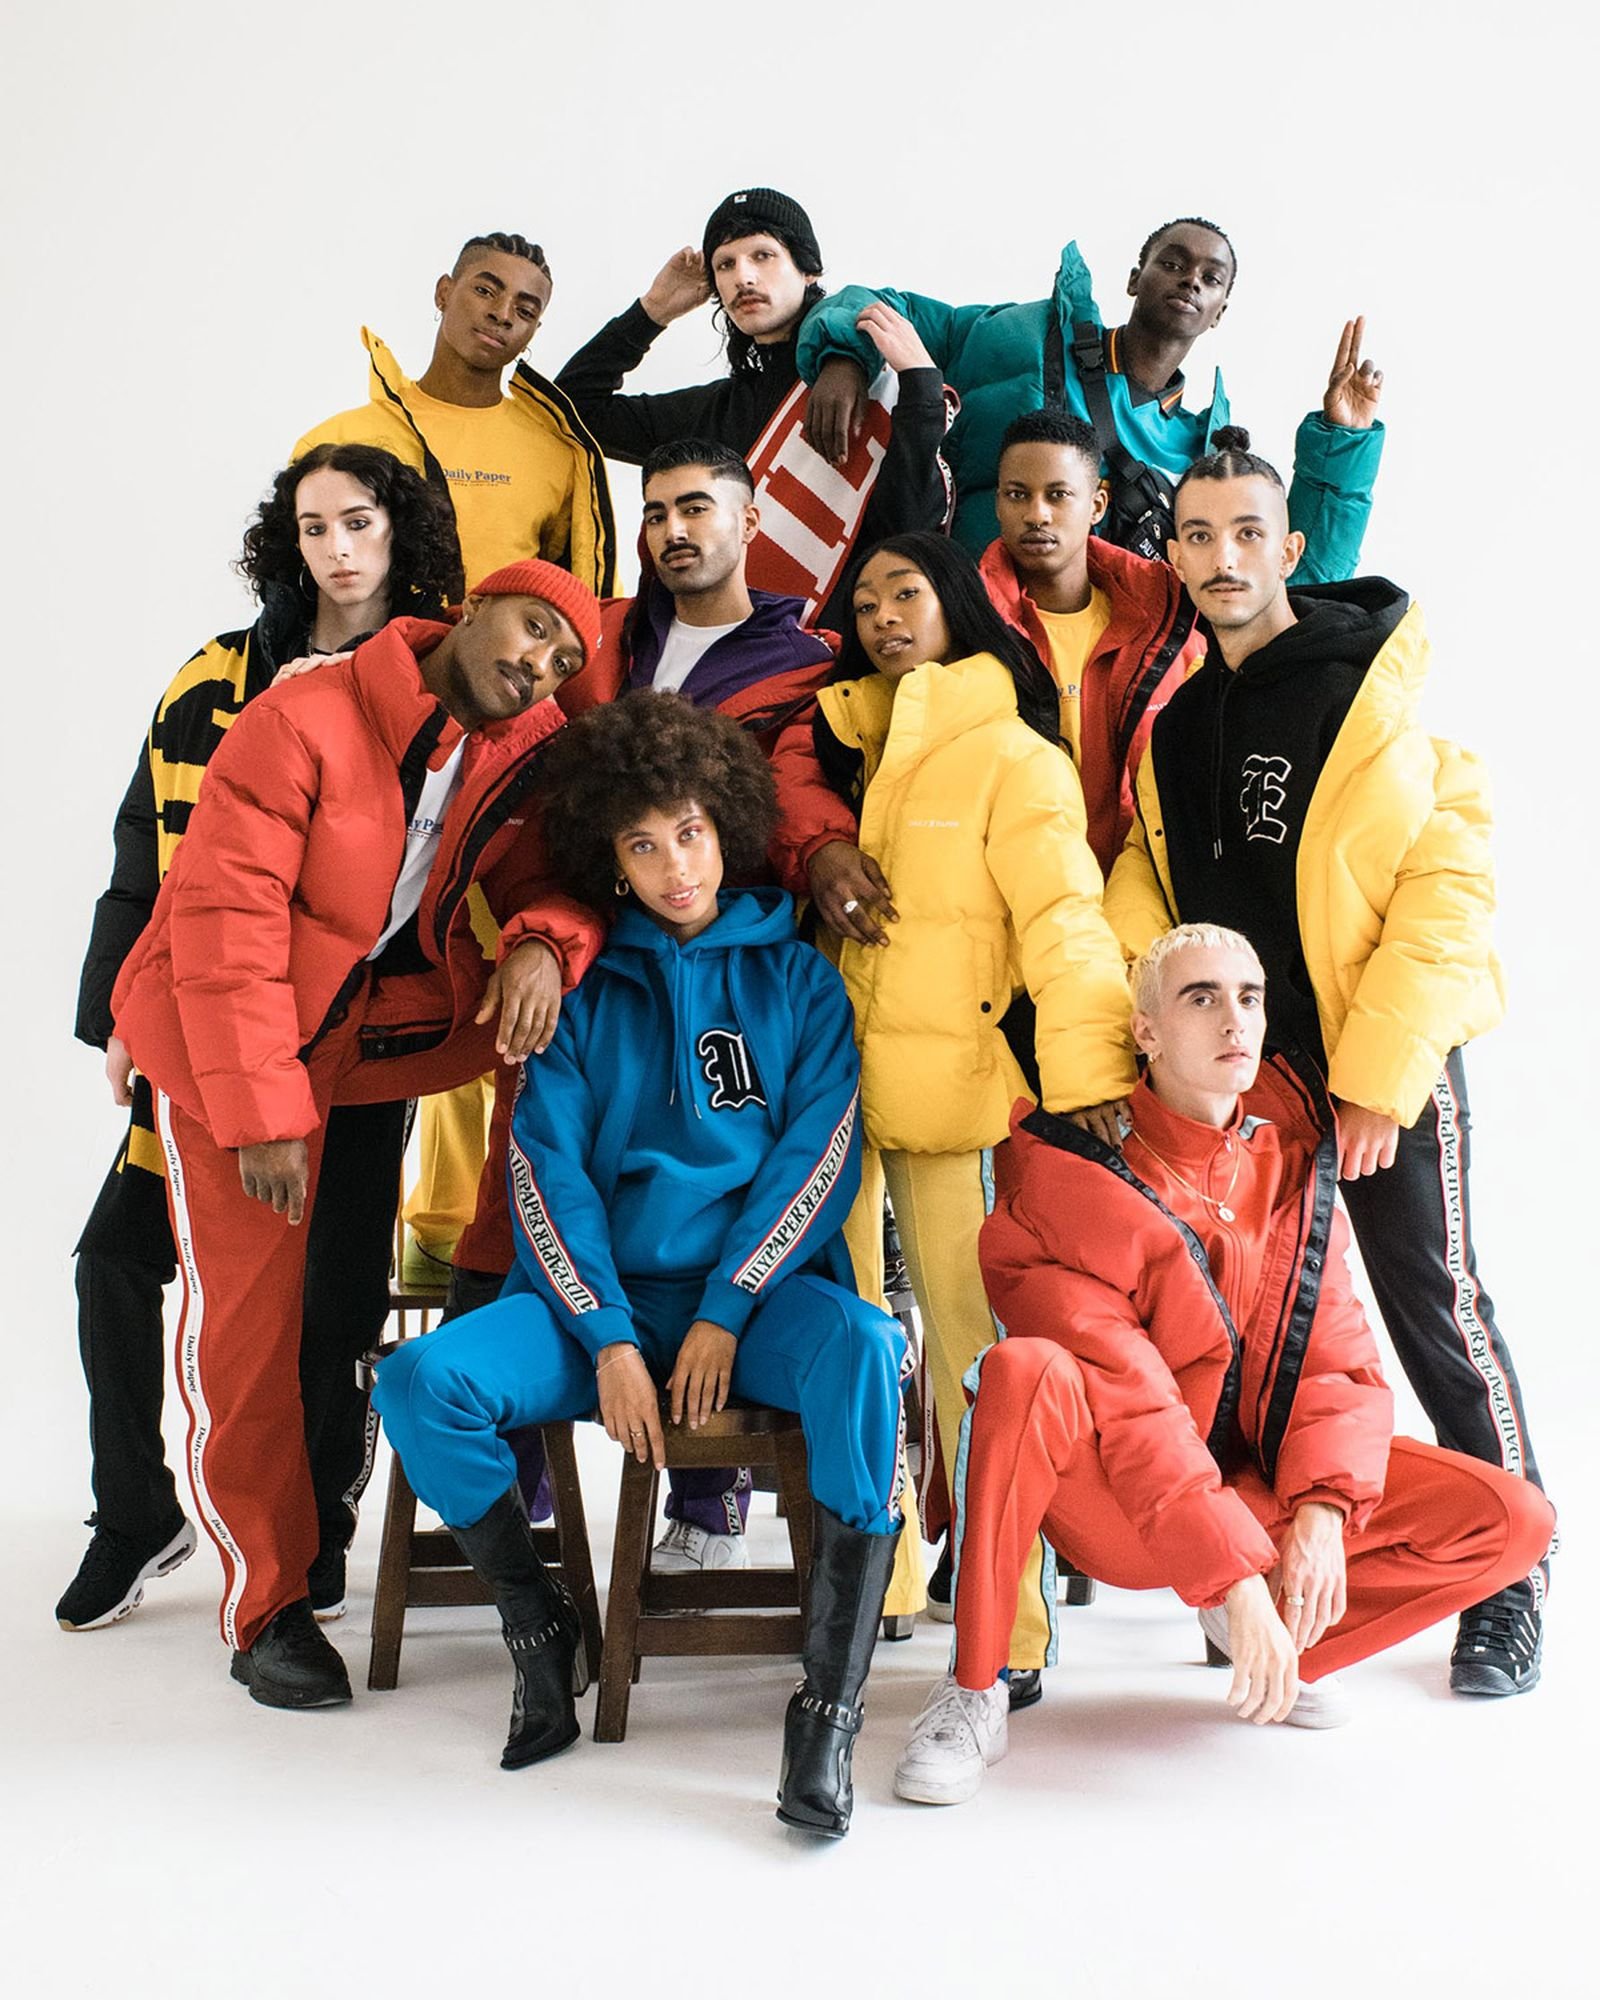 Over 30 London-based creators feature in Daily Paper's F/W 2018 UNITE campaign, made in partnership with FGUK Magazine.